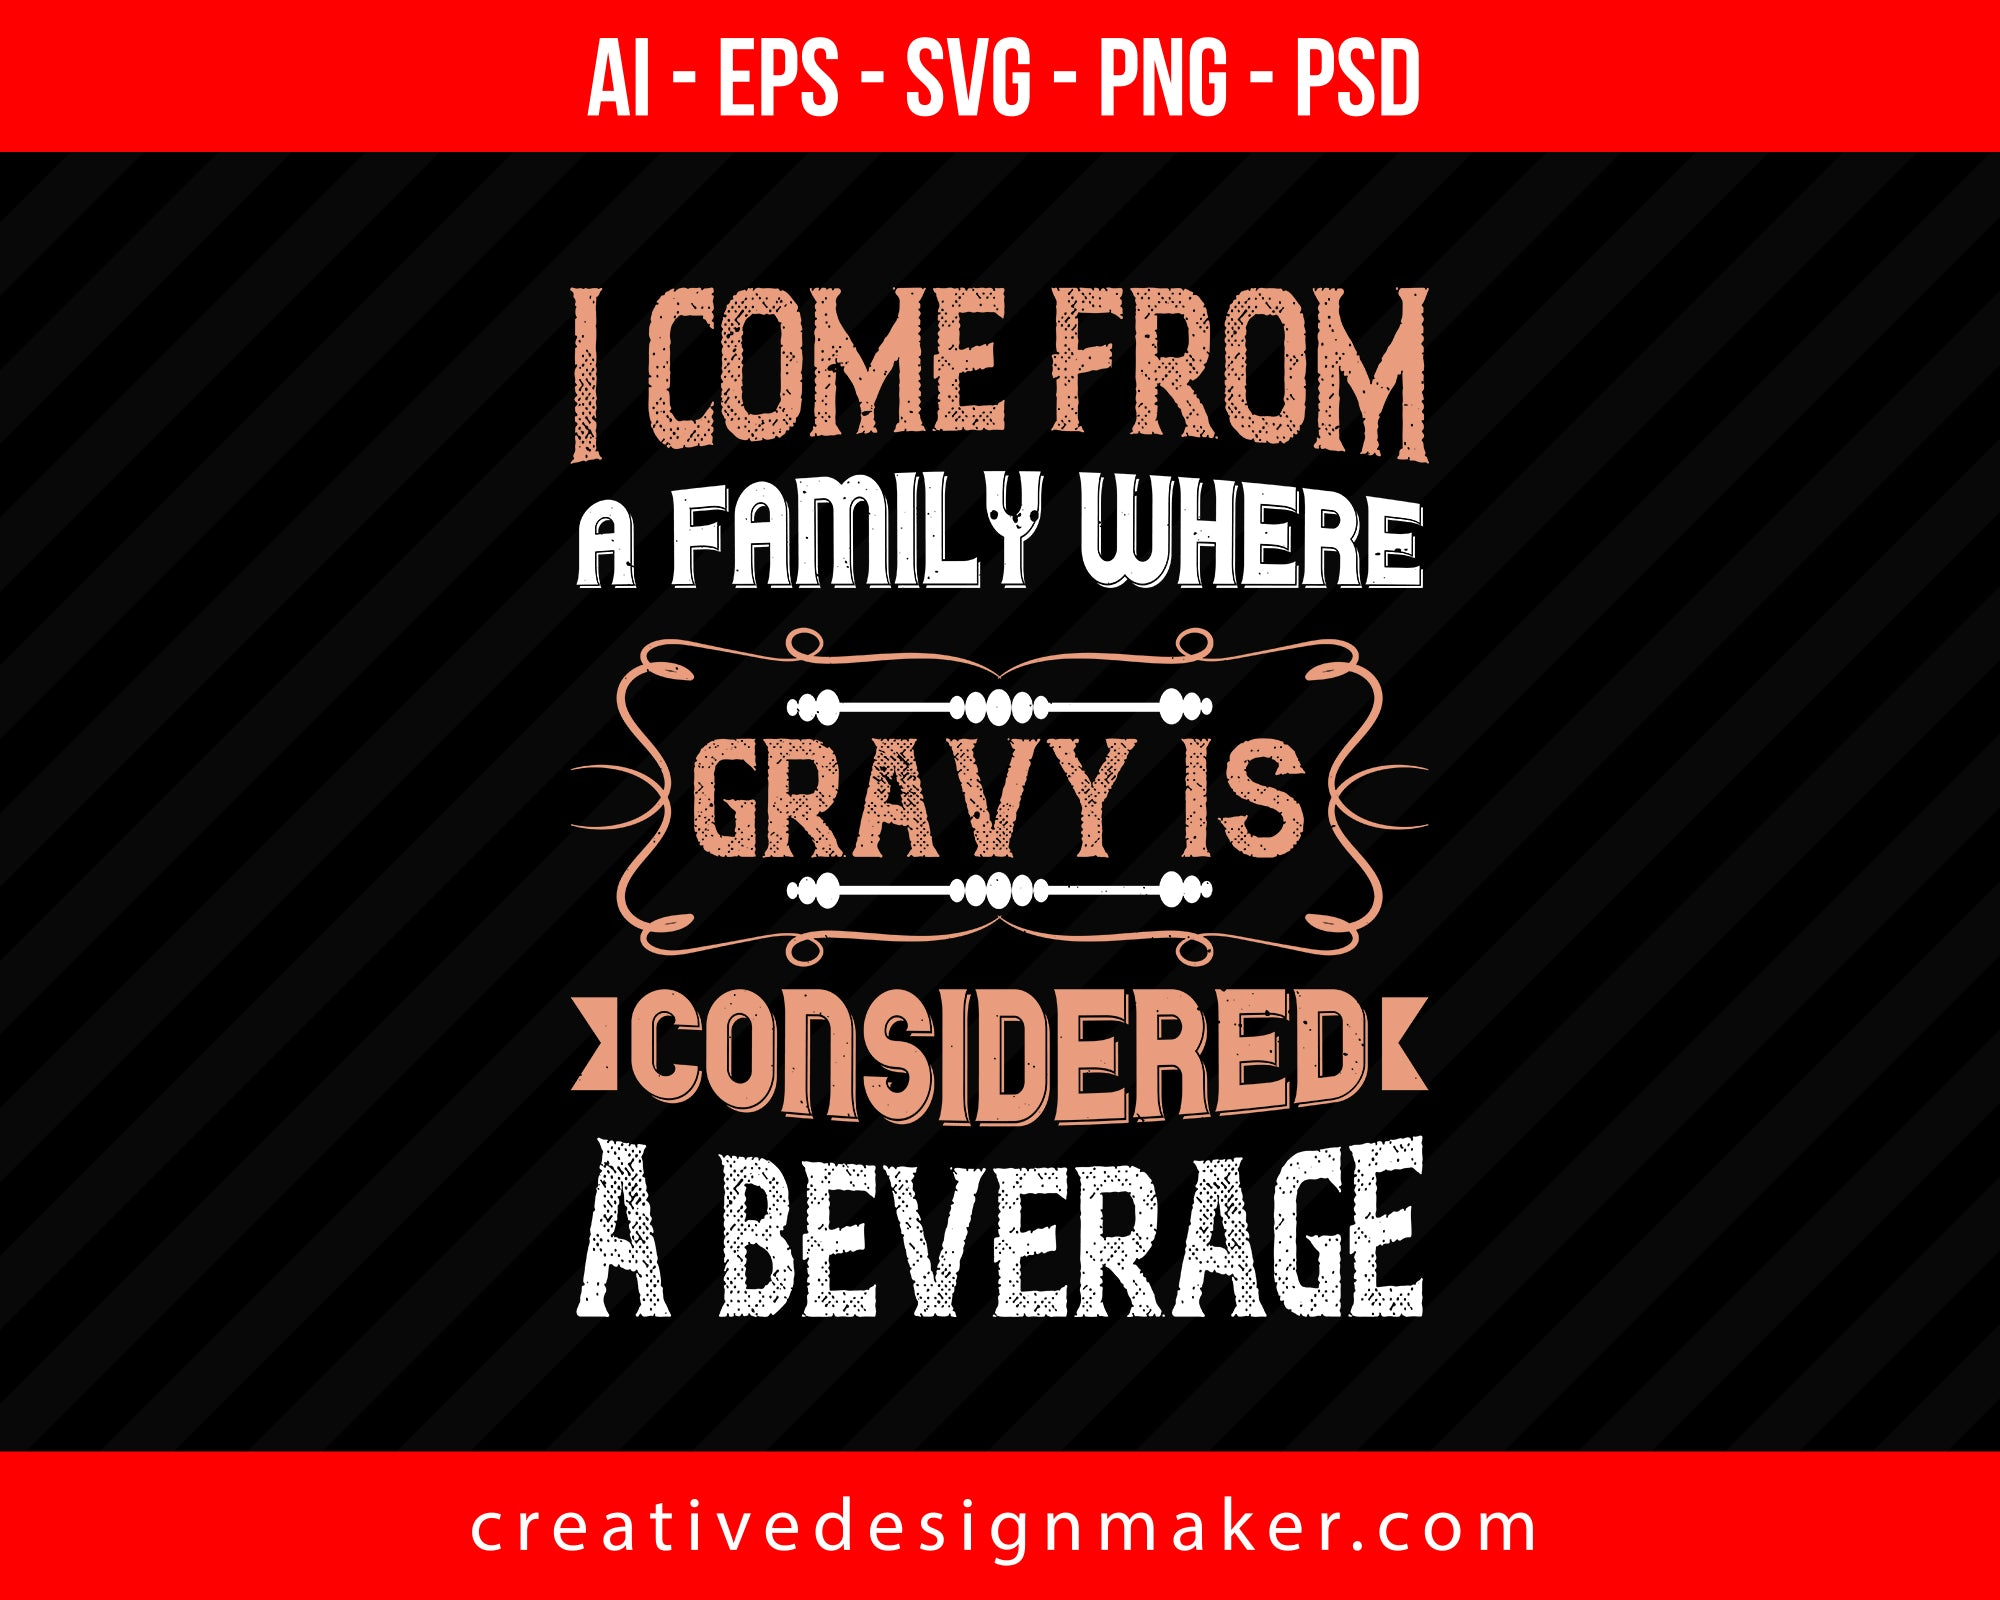 I come from a family where gravy is considered a beverage Thanksgiving Print Ready Editable T-Shirt SVG Design!